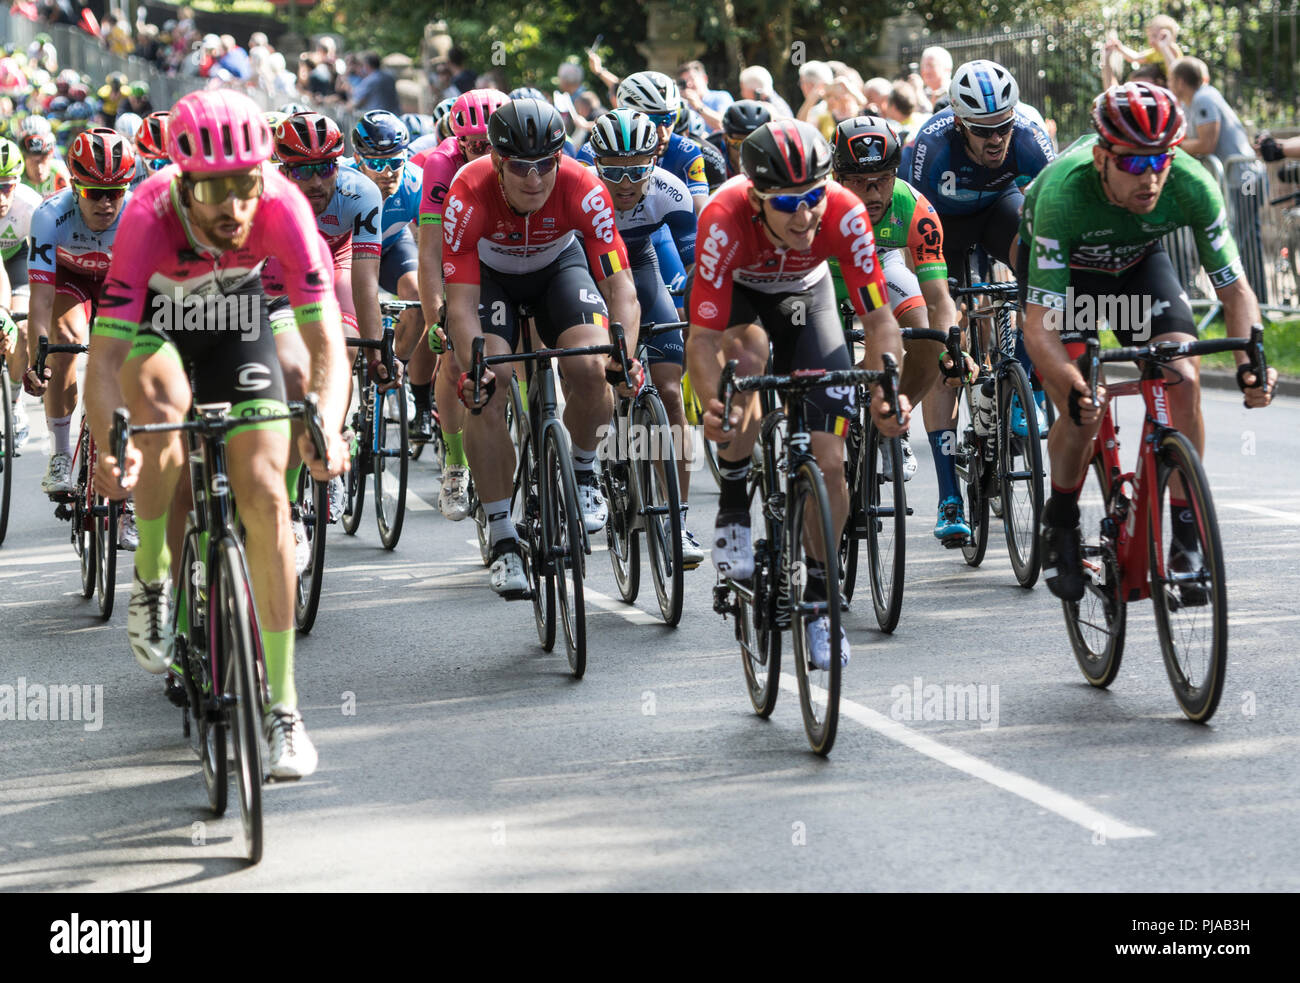 Leamington Spa, UK. 5th September 2018. Leamington Spa, Warwickshire, England, UK. The leading peloton approaches the finish of the 4th stage of the Ovo Energy Tour of Britain in Leamington Spa. Prominent is German rider Andre Greipel (black helmet) of the Lotto Soudal team who won this stage which started in Nuneaton. - Stock Image